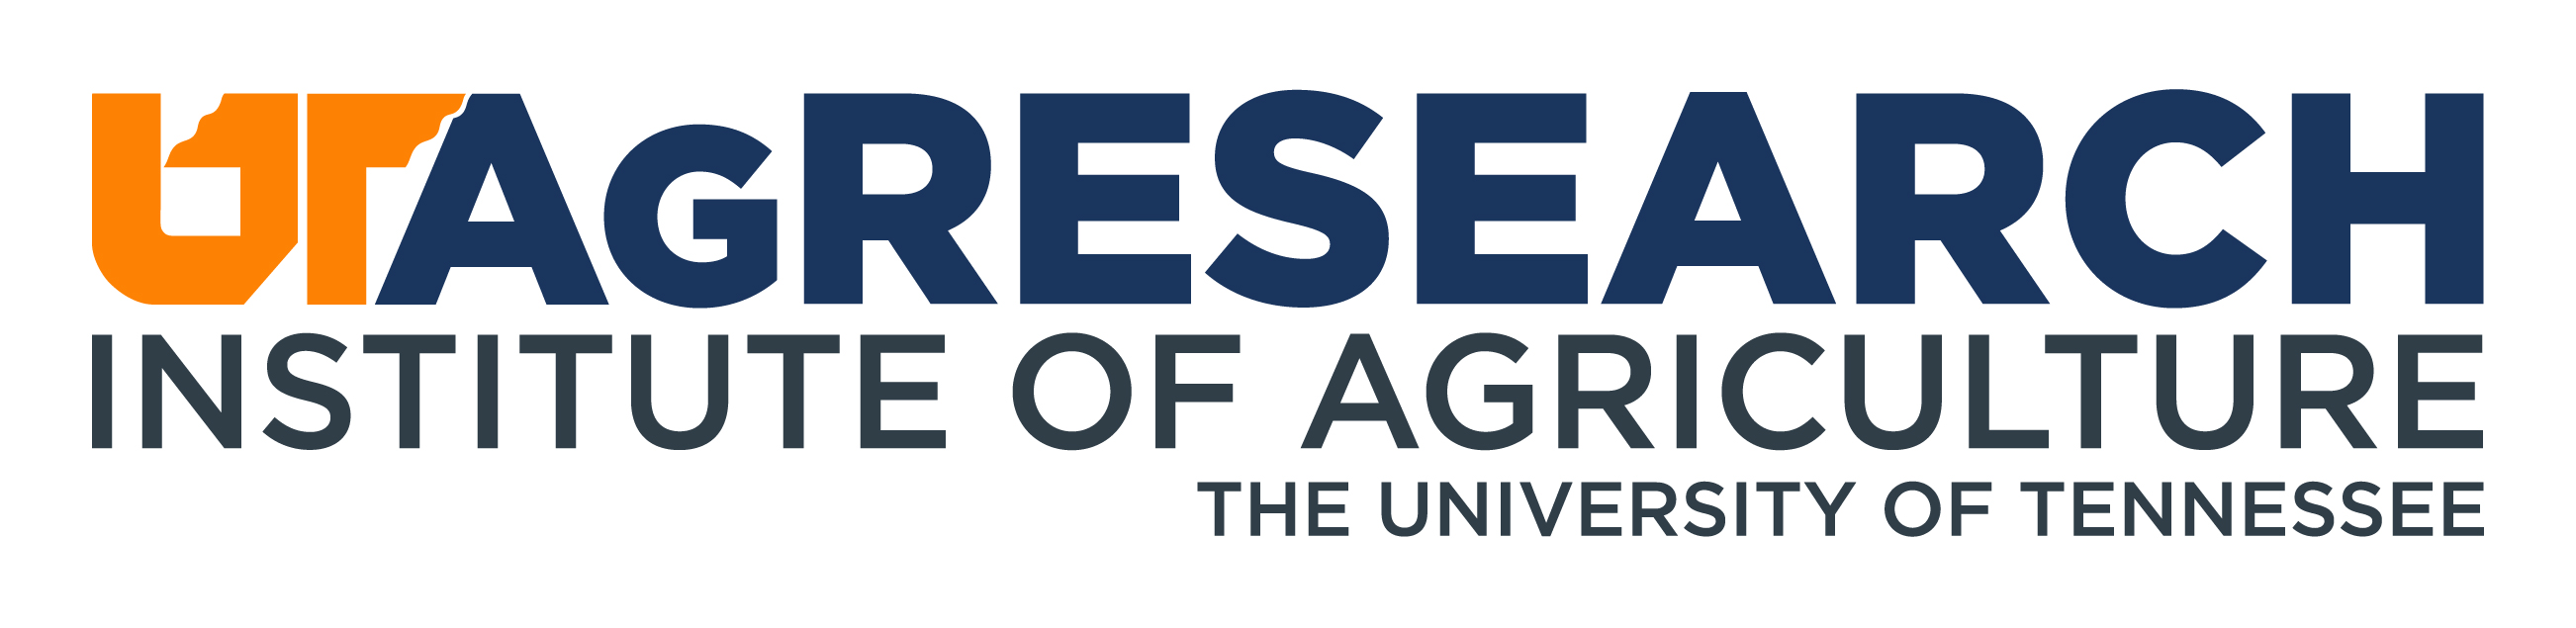 University of Tennessee AgResearch